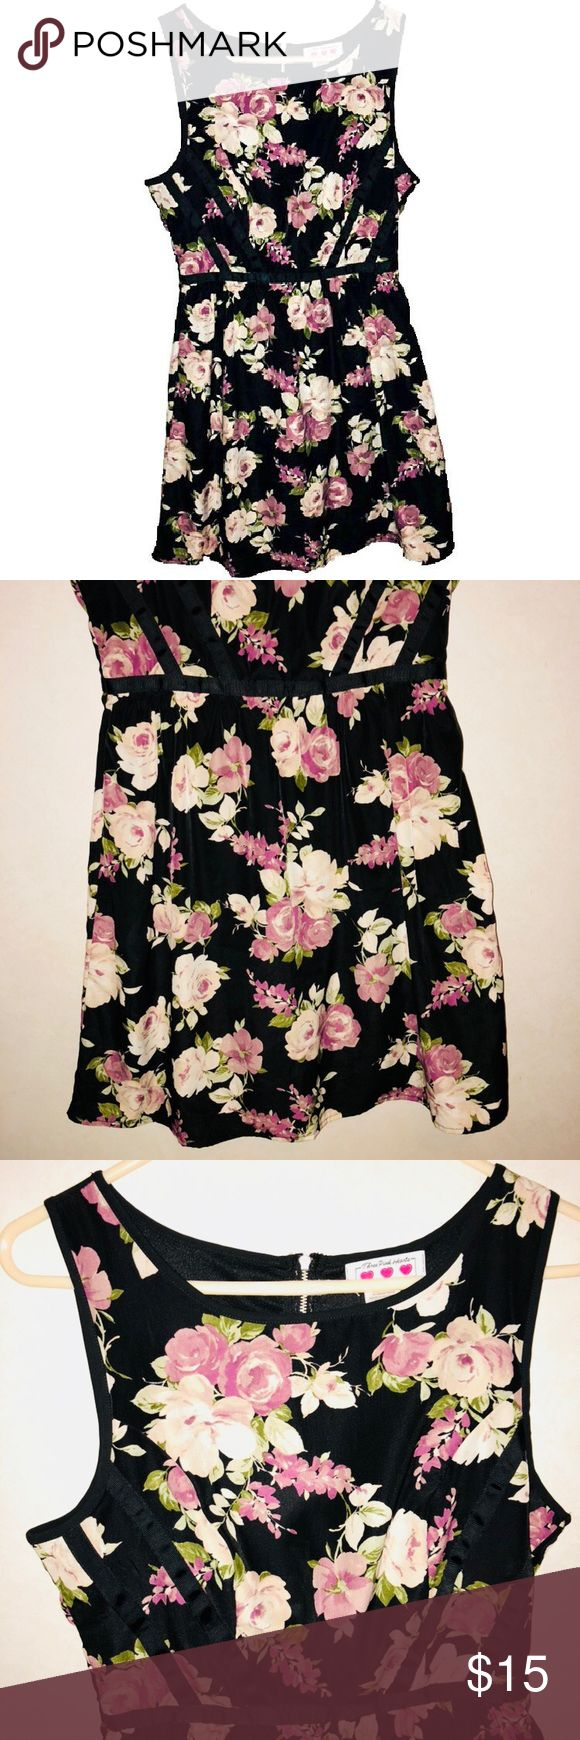 Size 7 Three Pink Hearts Floral Dress Brand: three pink hearts  Size: 7  Details: black with pastel floral rose graphic throughout. Zip up back. Thick strap tank style. Rib ion black detail in torso area and a loose fit bottom kind of like a fit and Flare. Juniors sizing but could fit Women's to.  Condition: Like New  Material: 100% polyester   Feel free to bundle to SAVE! Best offers are welcome! Three Pink Hearts Dresses Mini